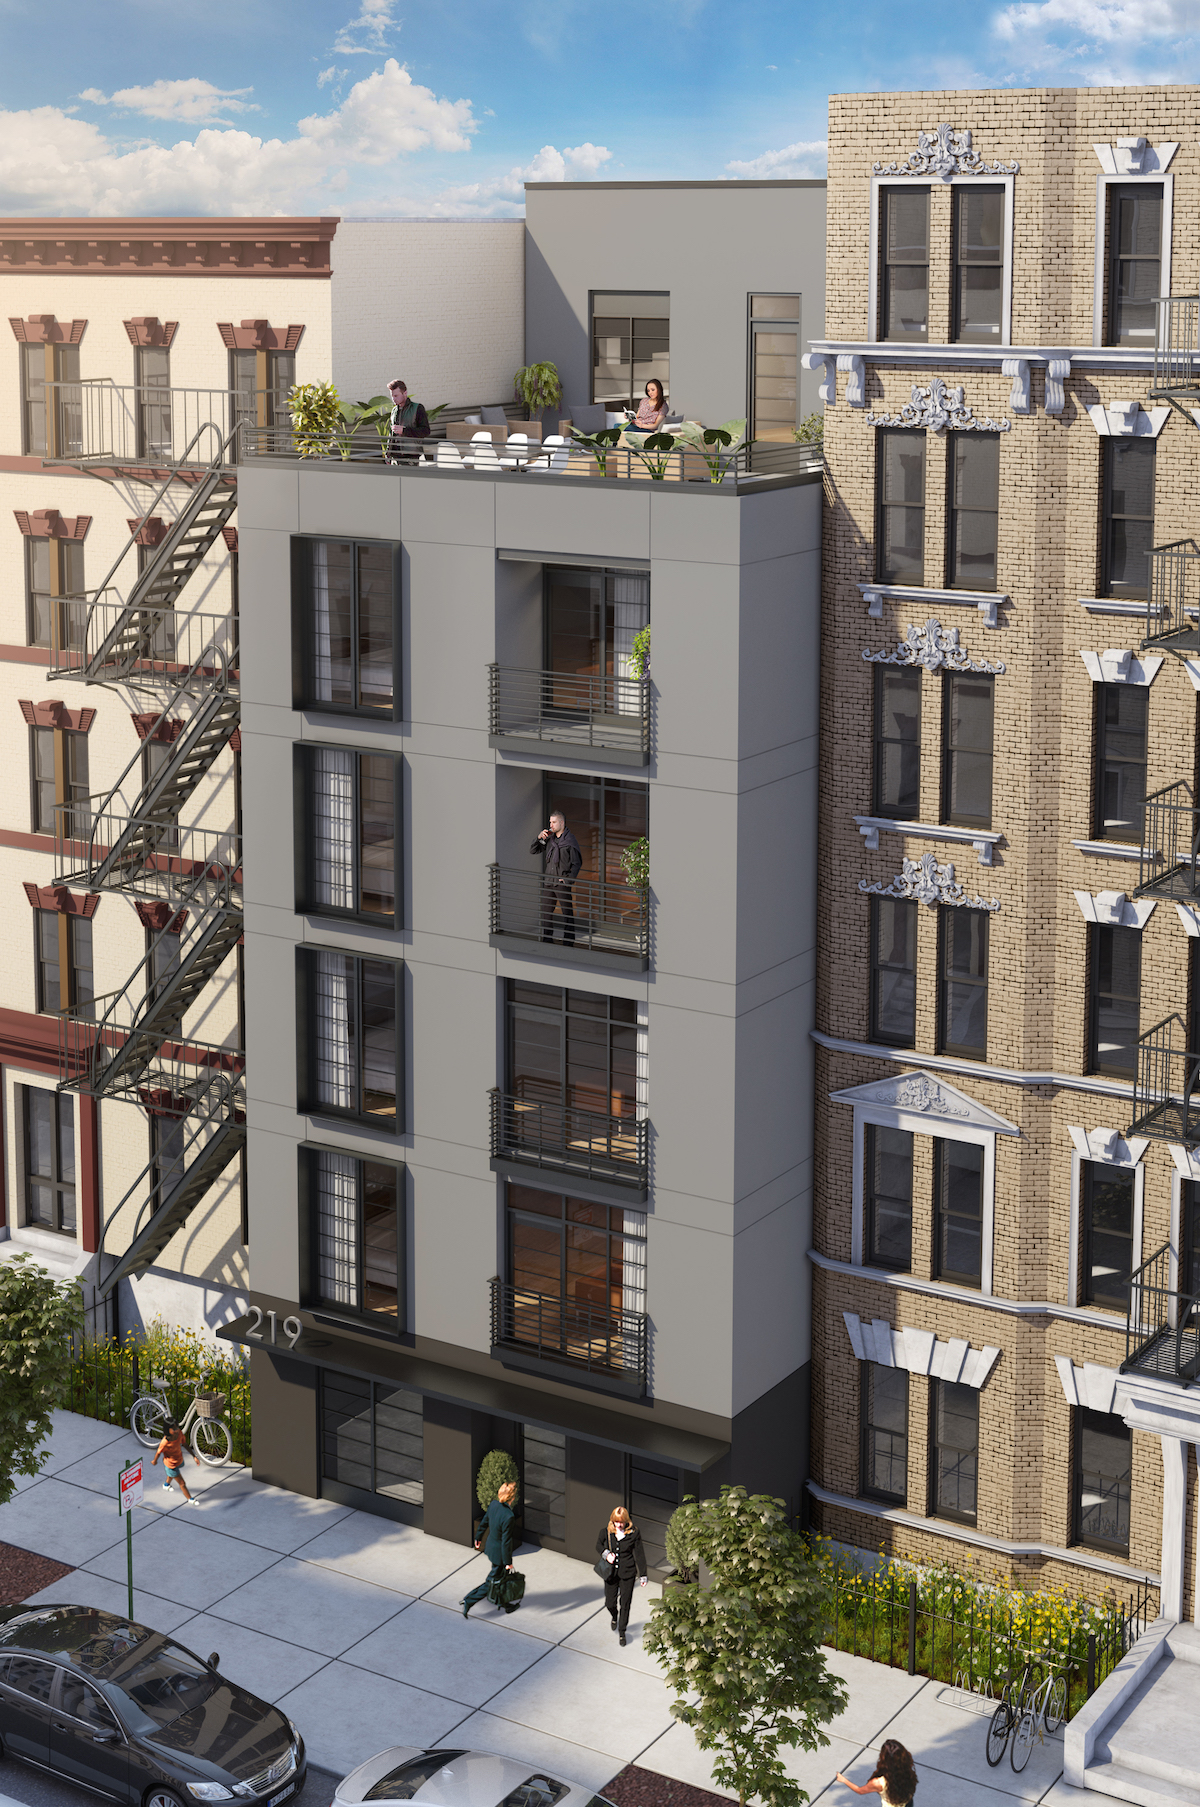 219 South 3rd Street, rendering via TerraCRG